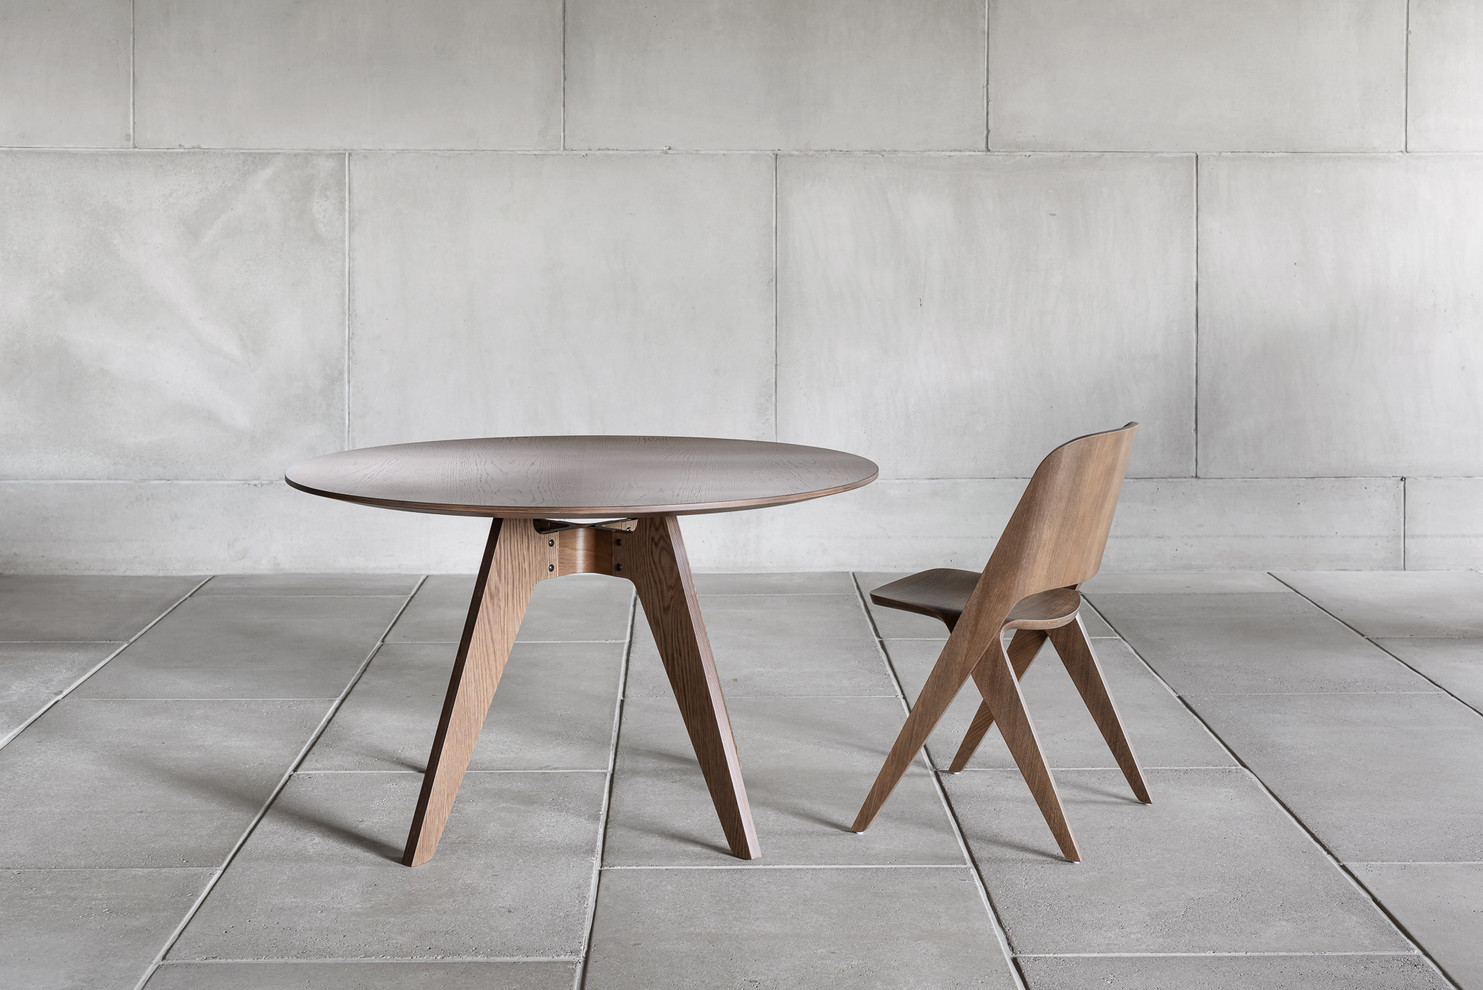 Furniture Design | Lavitta Chair and Table 120 | 2020